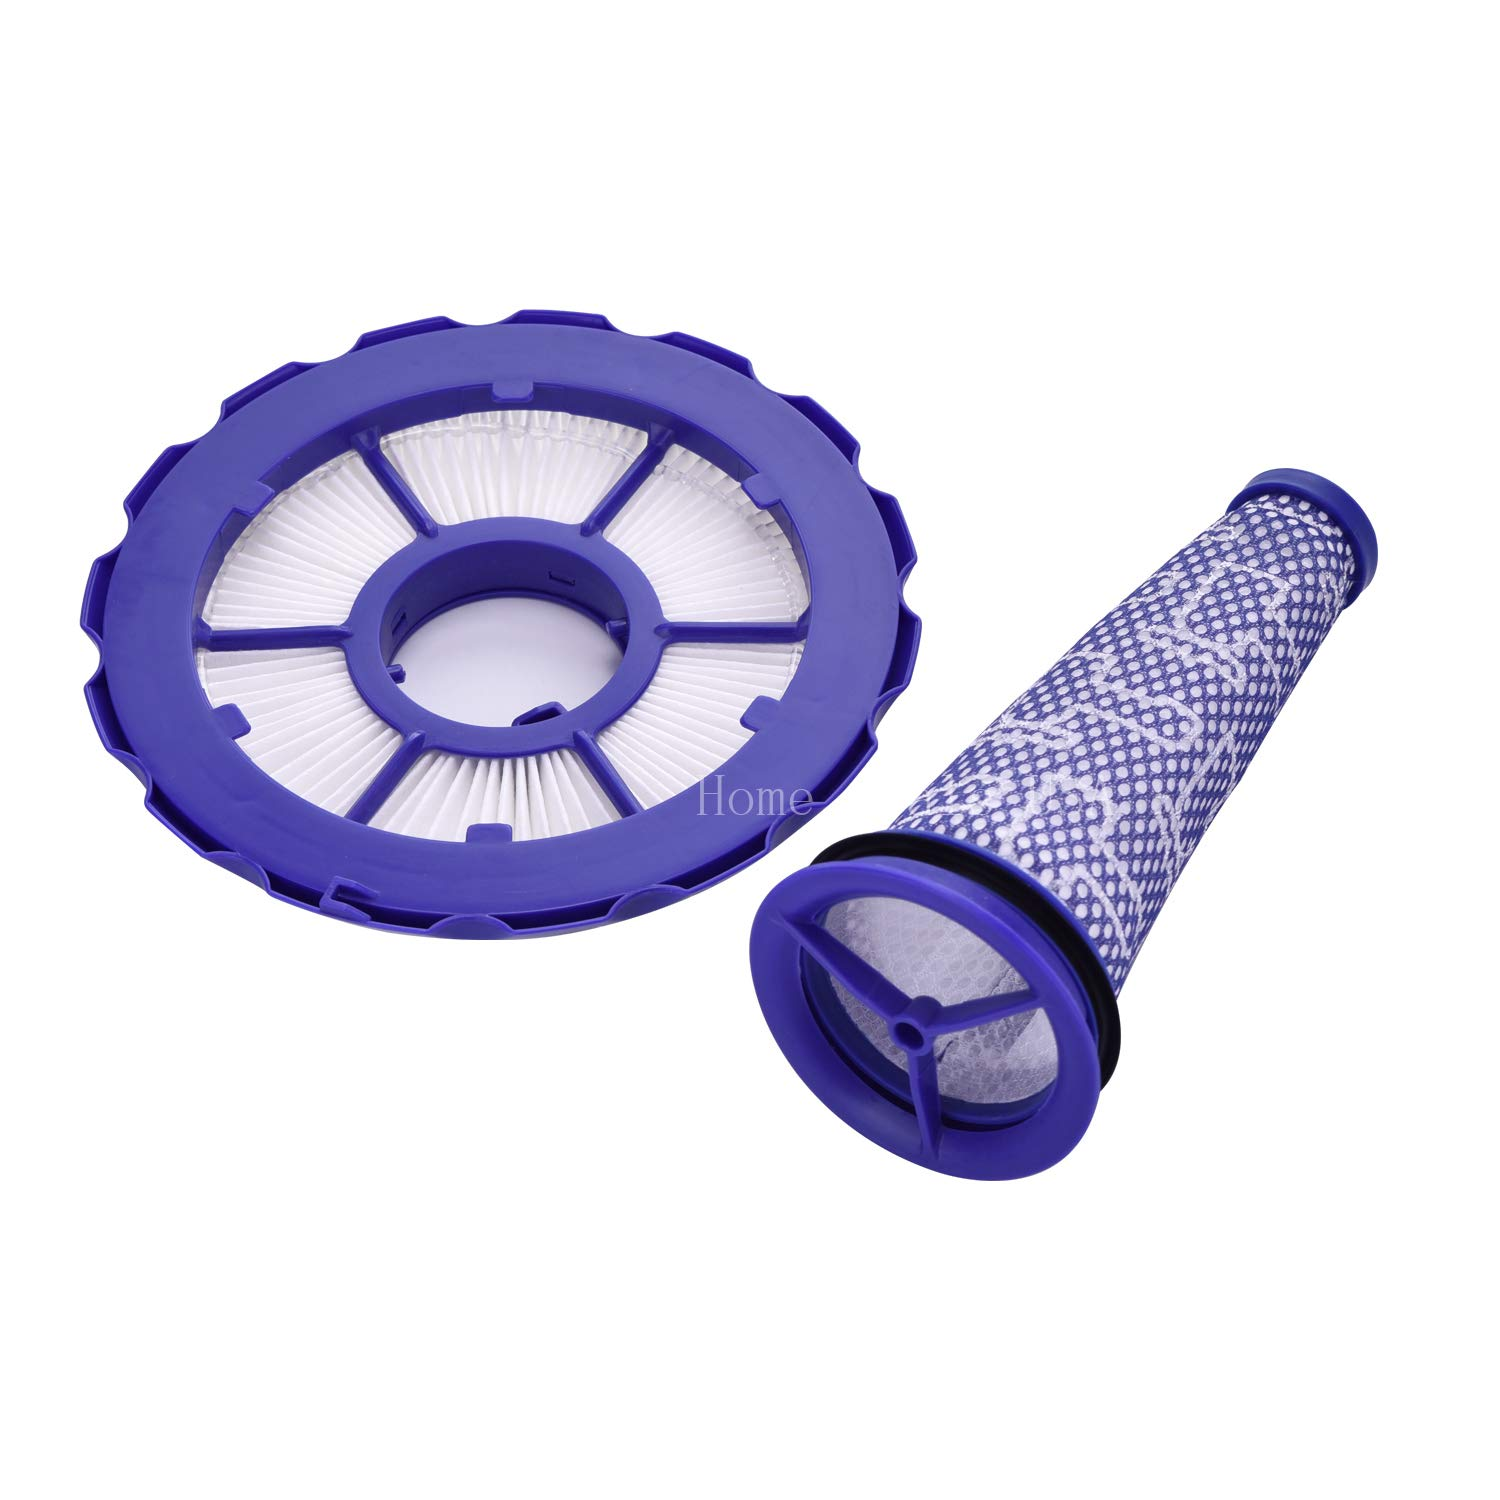 Home Deals USA Replace Dyson DC50 Filter (dc50 Combo Pack) Animal and Multi Floor vacuums, Part Number 965080-01 & 965081-01 by Home Deals USA